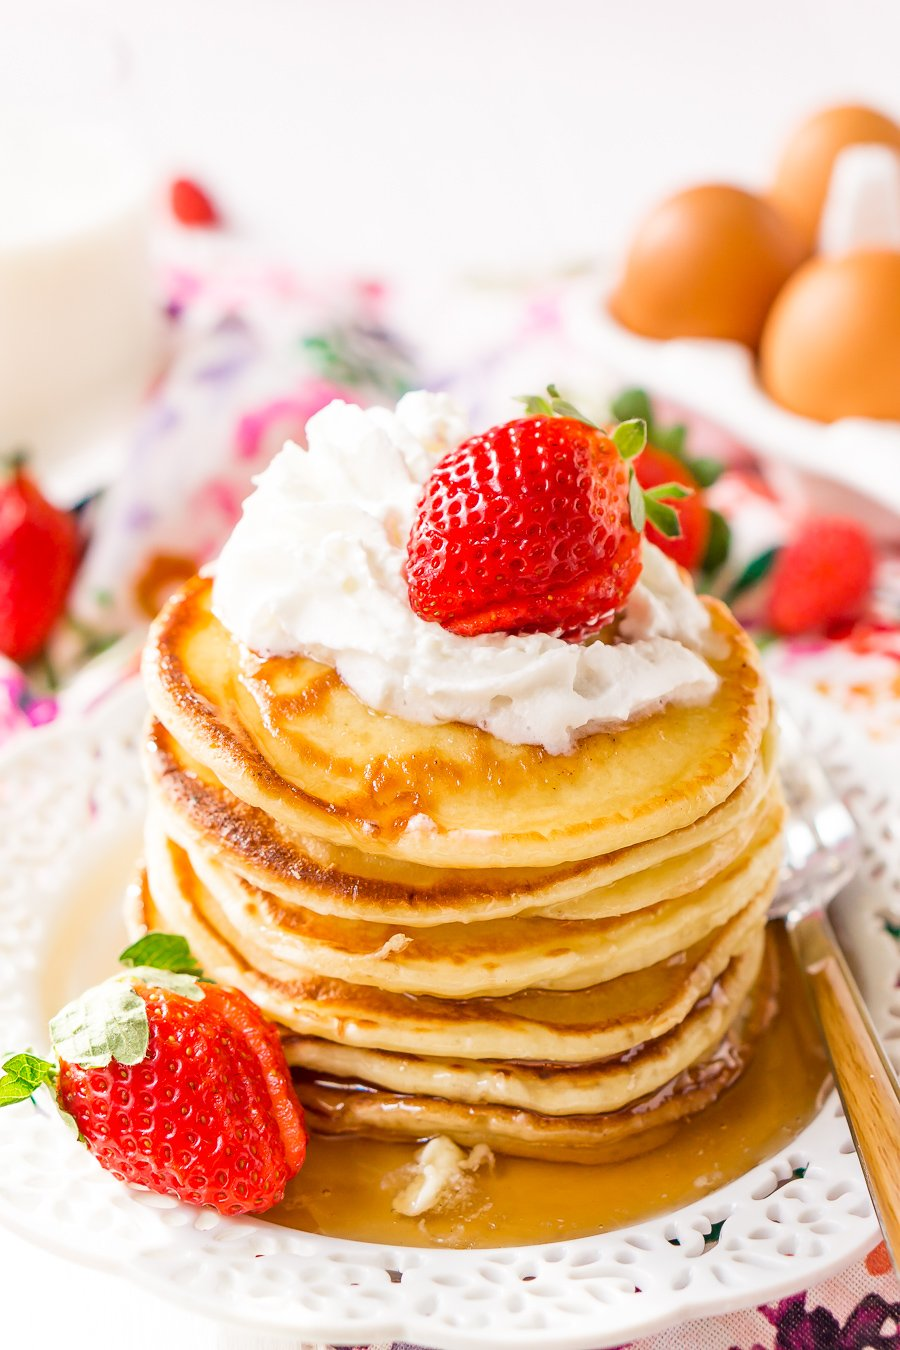 Cream Cheese Pancakes put a tasty twist on a traditional breakfast favorite! They have a decadent flavor with a dense yet fluffy texture for a dish that the whole family will love.